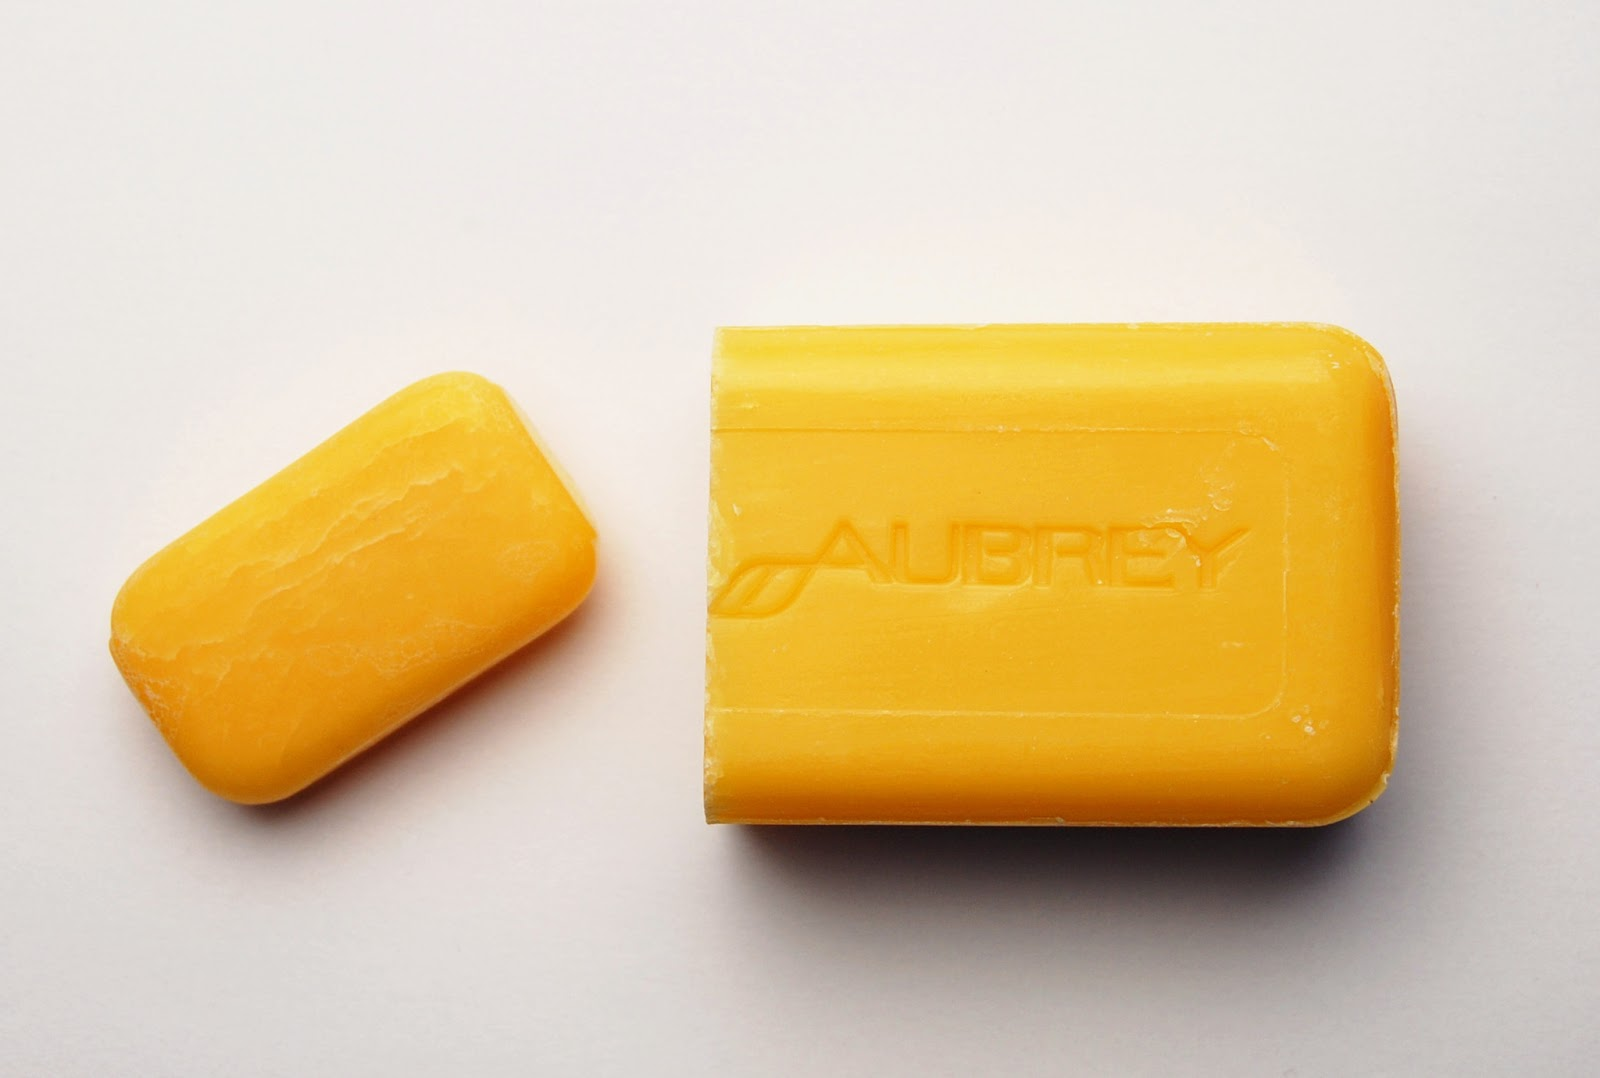 Aubrey Sea Buckthorn Nourishing Bath Bar